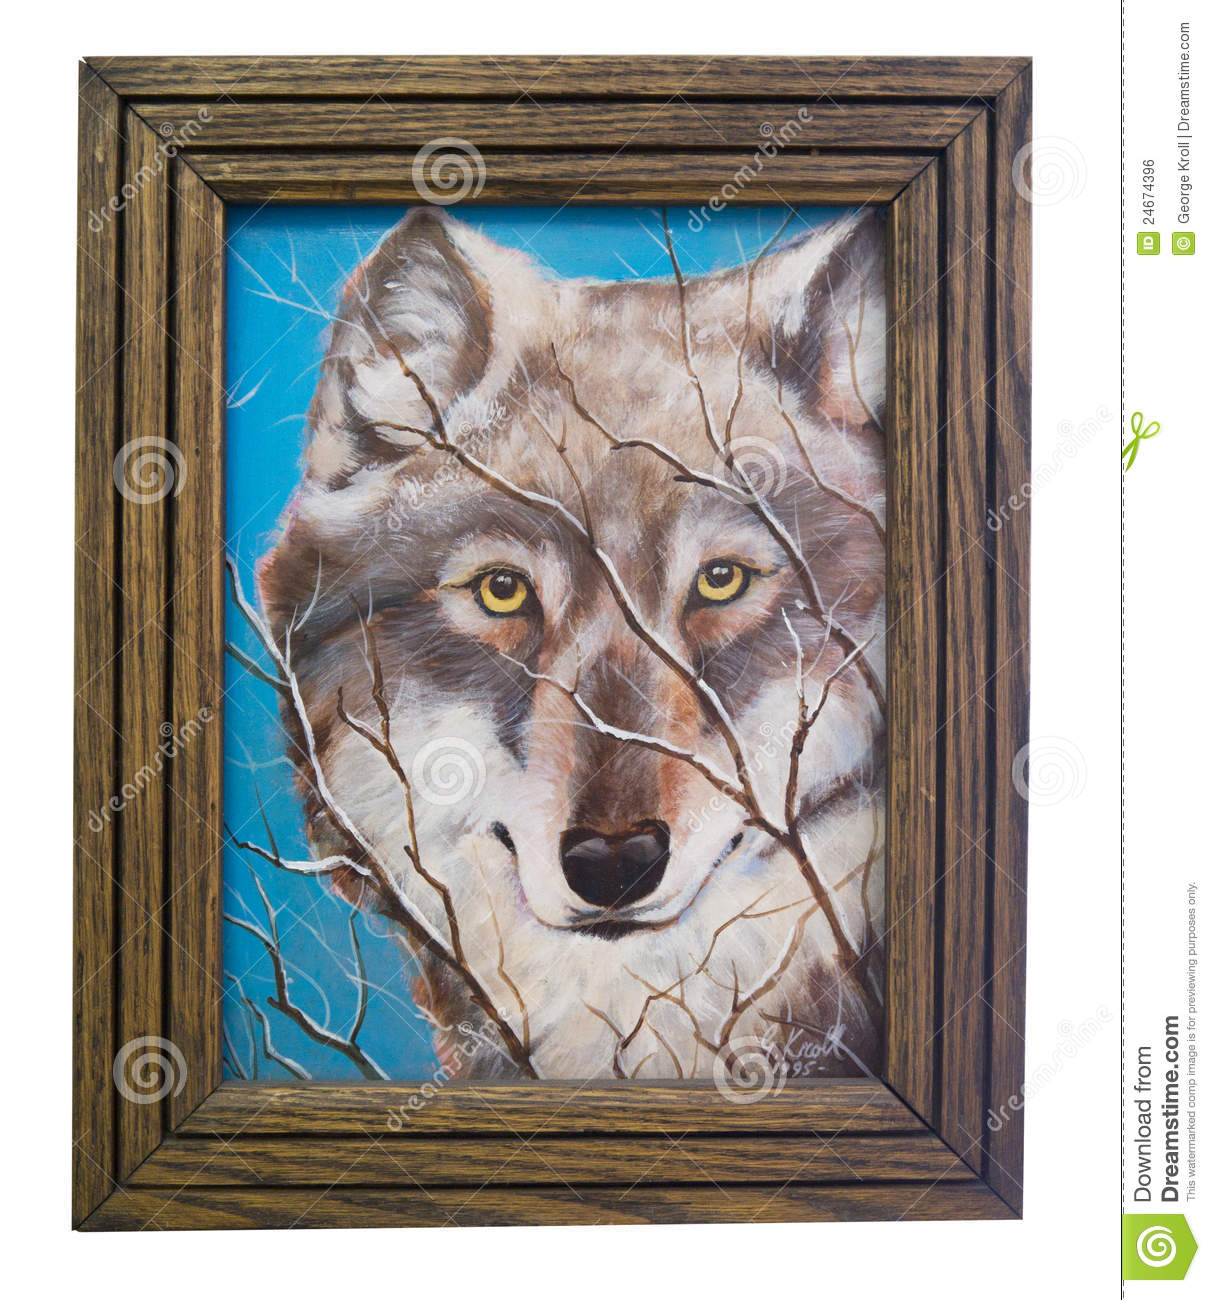 Painting of a Wolf by artist with Frame